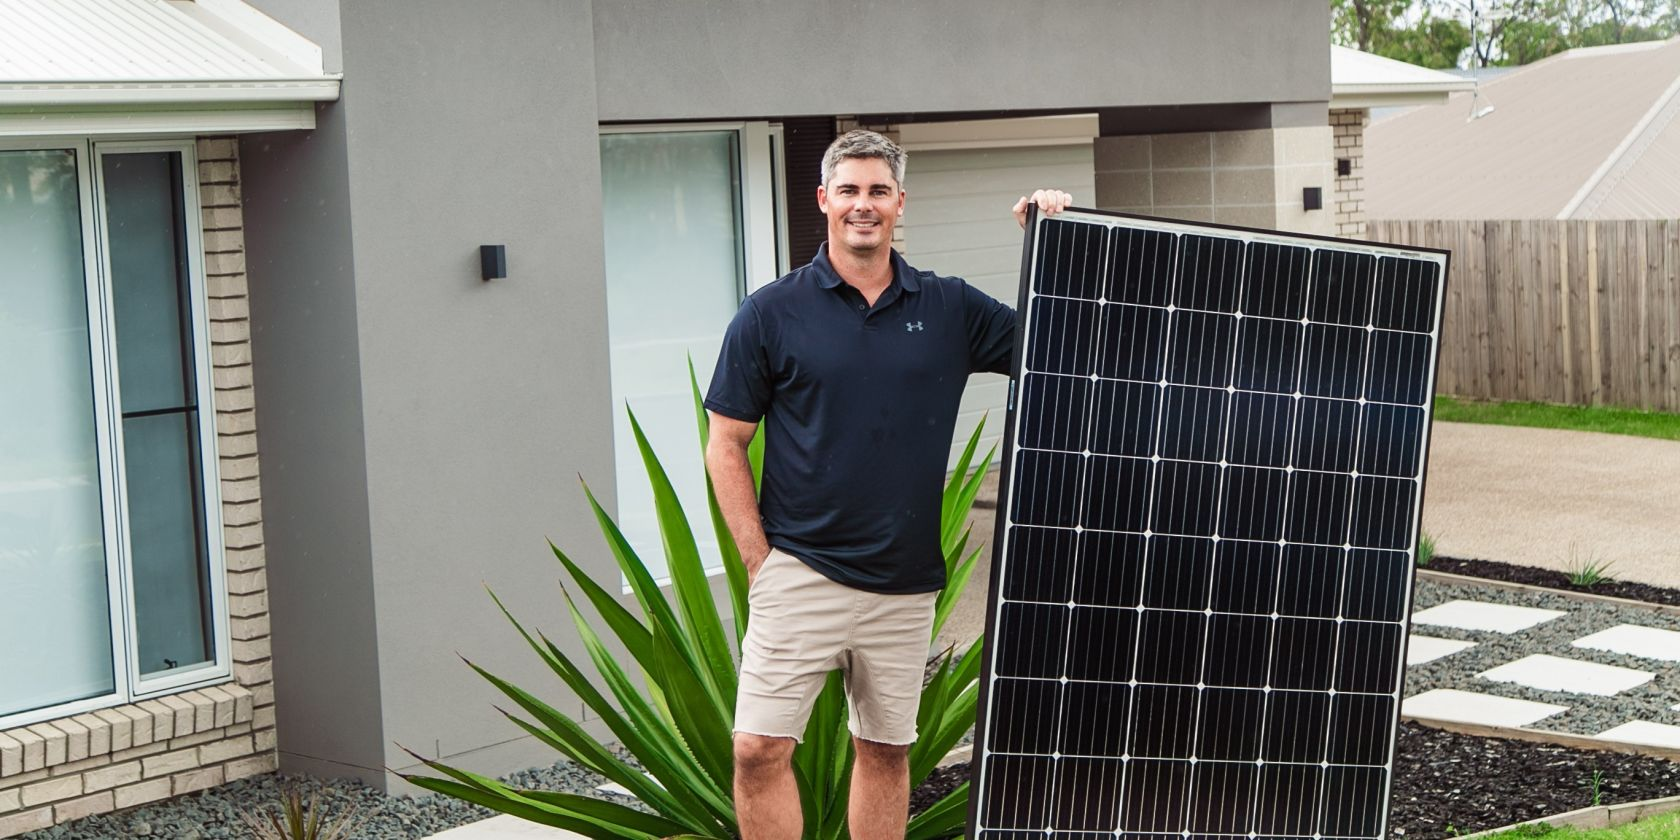 Suncorp Bank customers reduce energy bills with new solar panel rebate offer